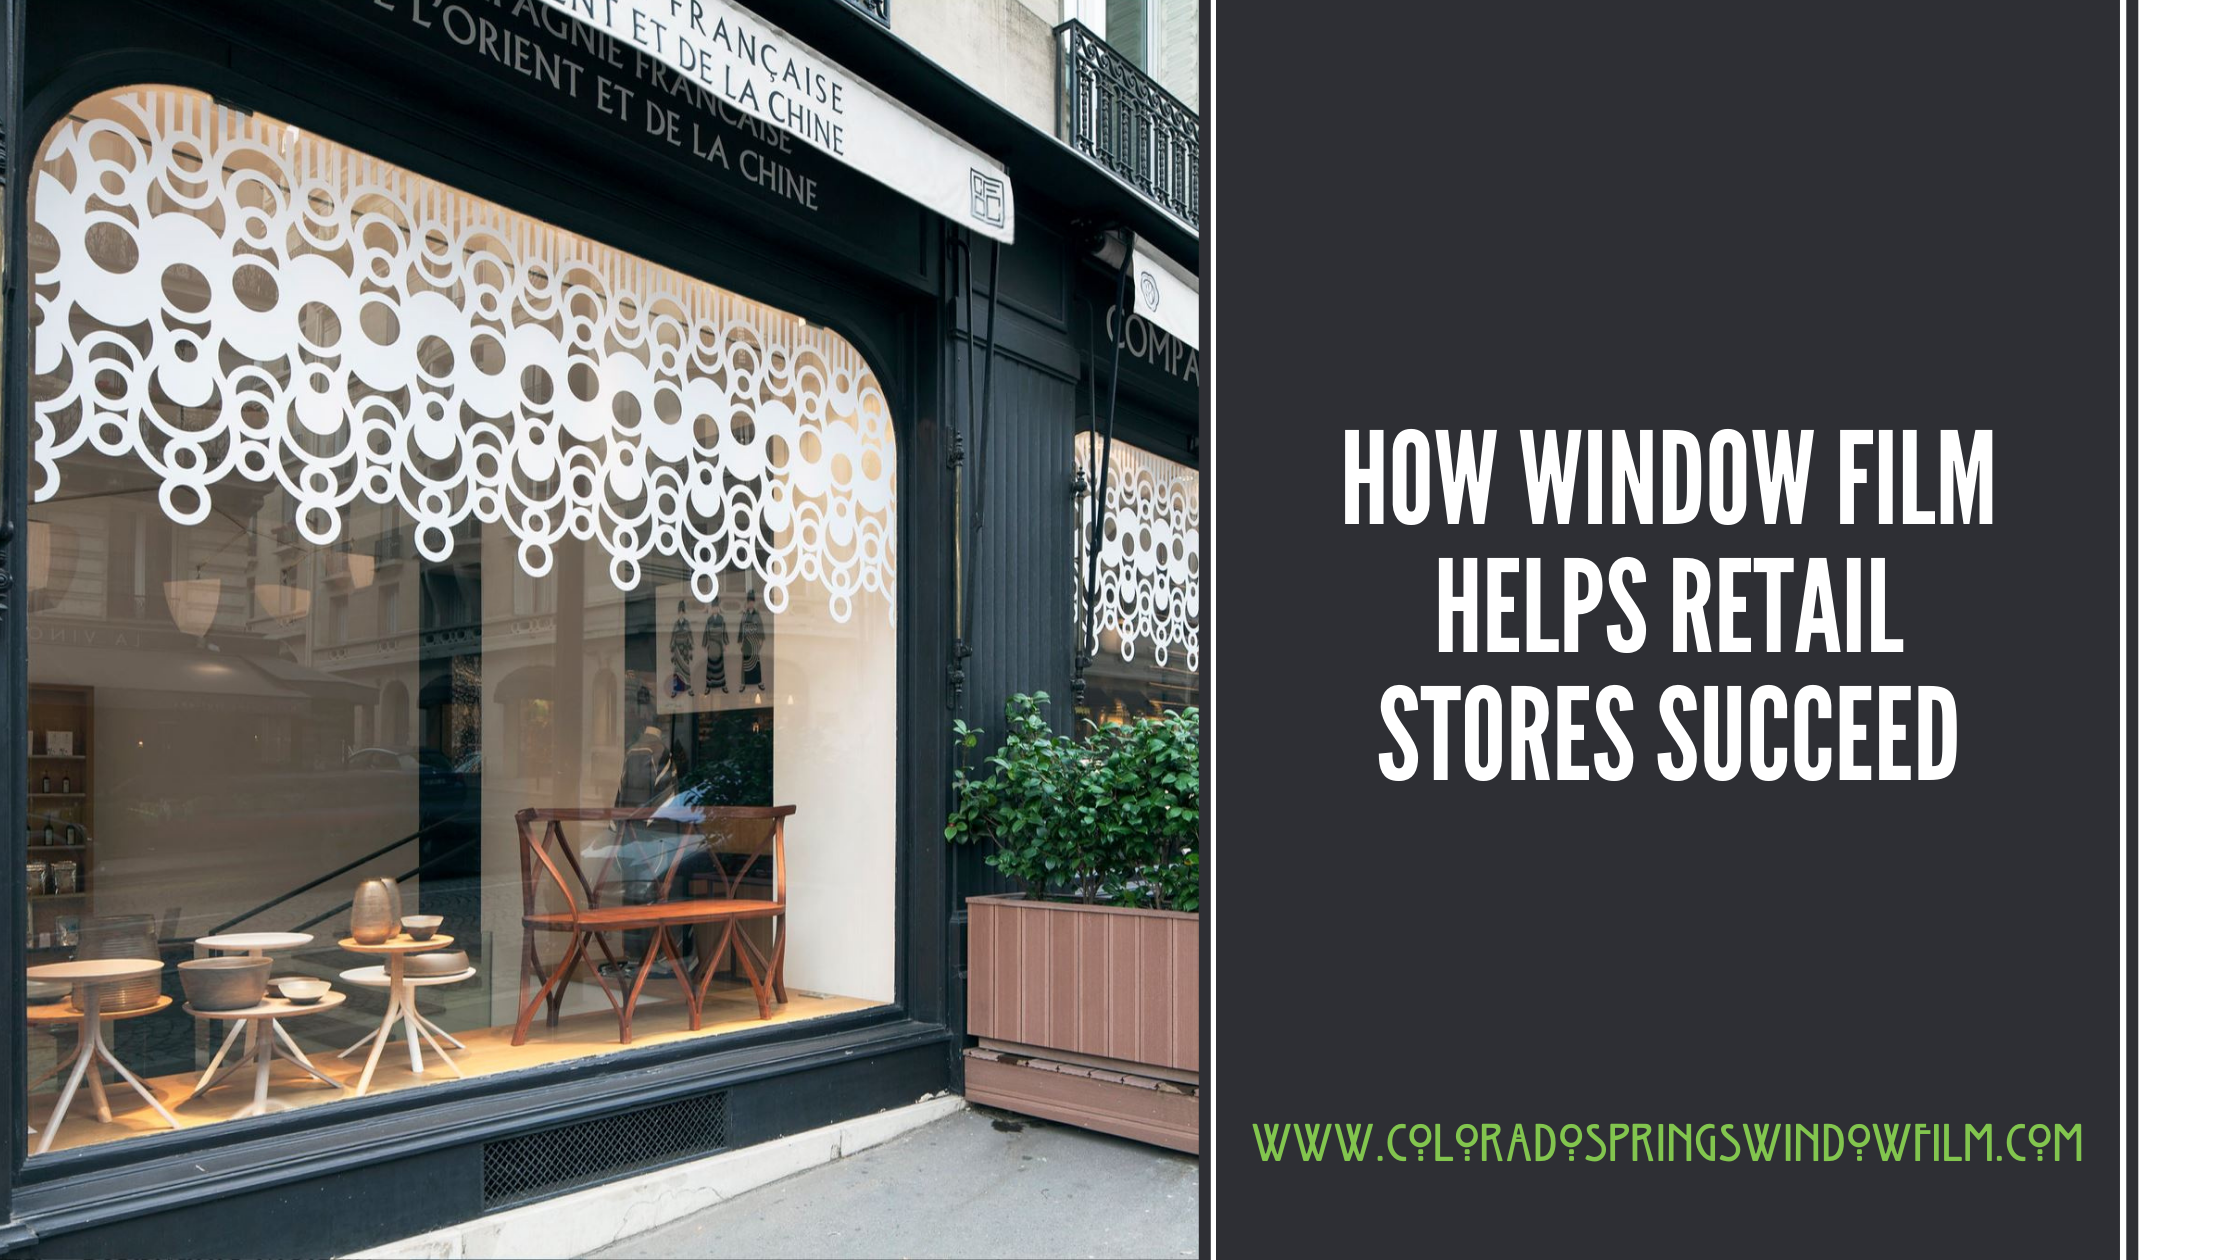 How Window Film Helps Retail Stores Succeed